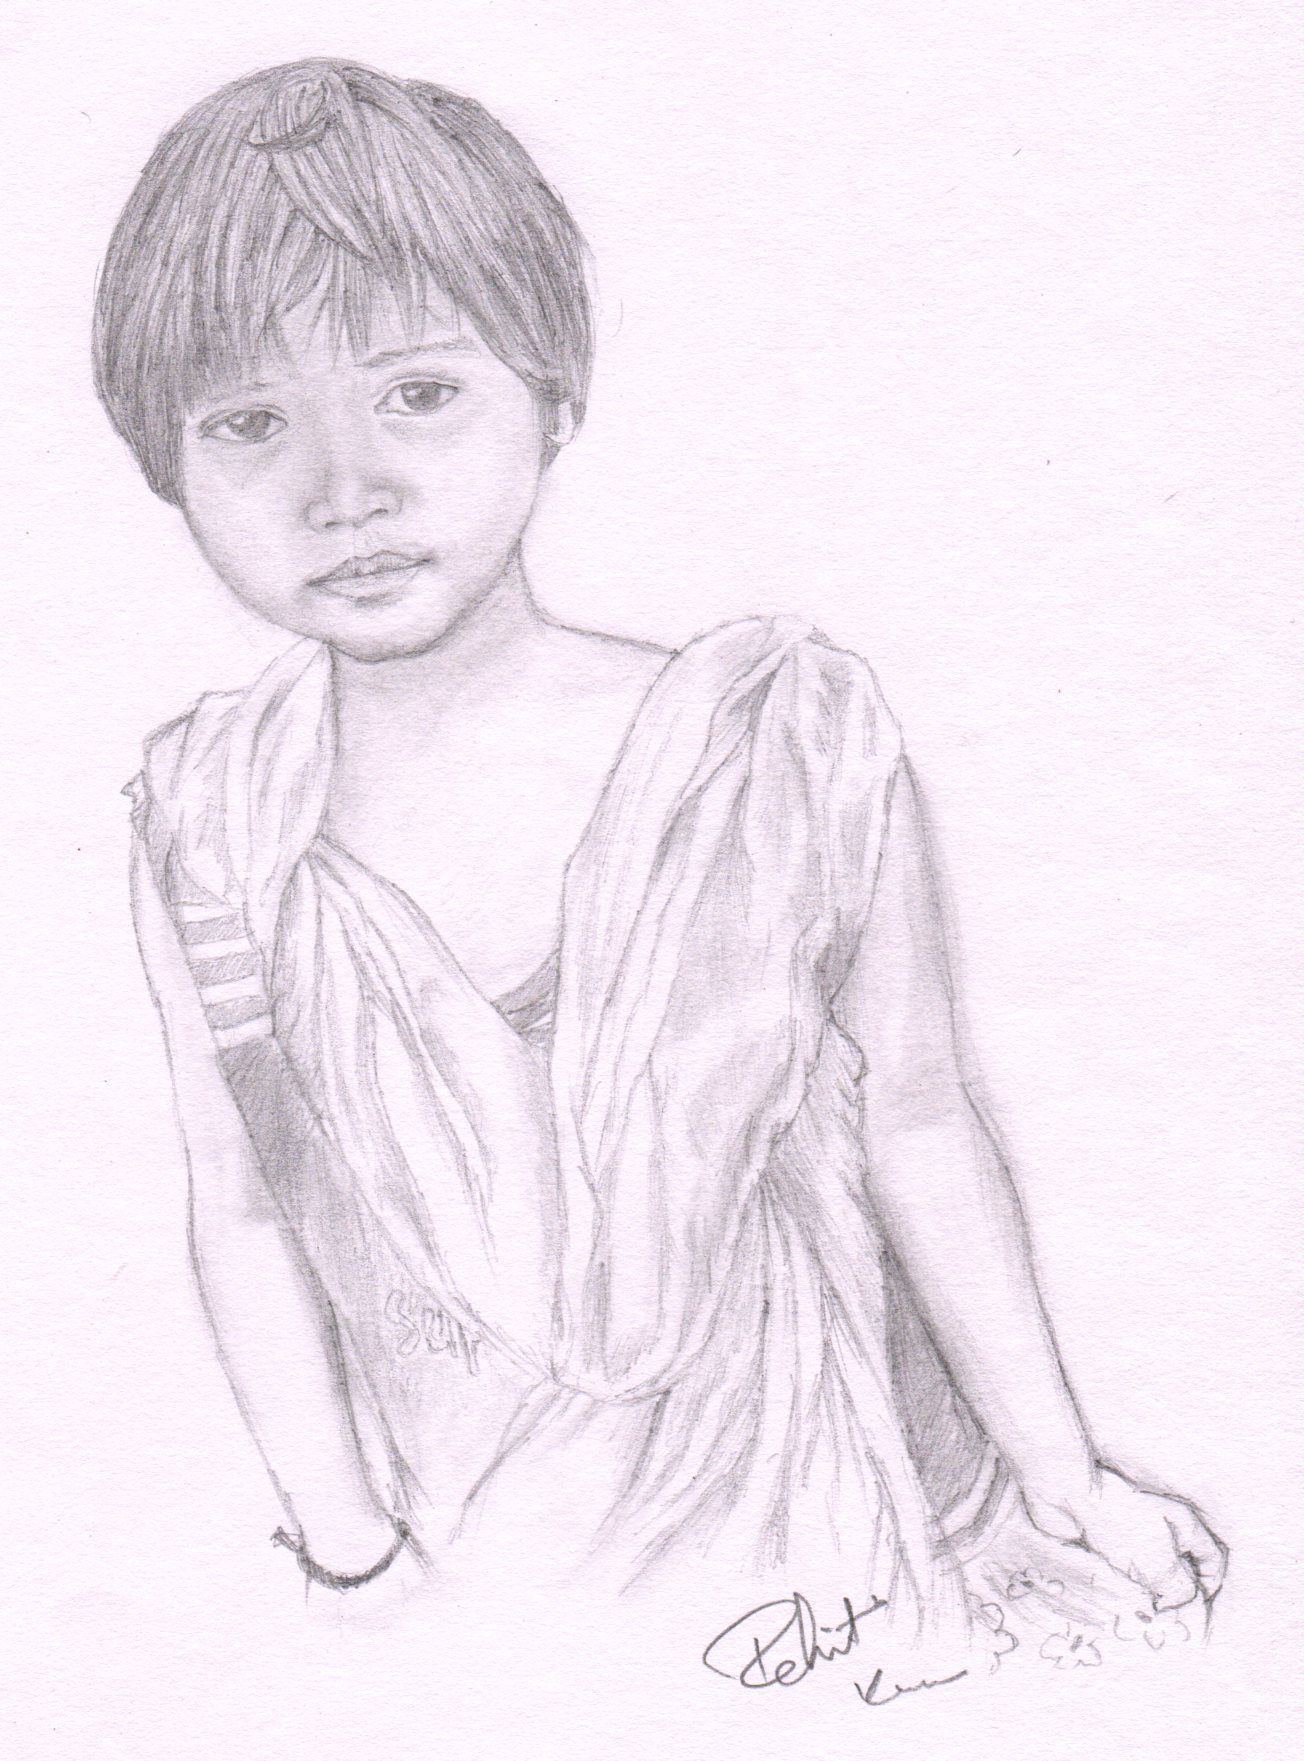 Sketch with hb pencil take 1 hour time pencil drawings pencil